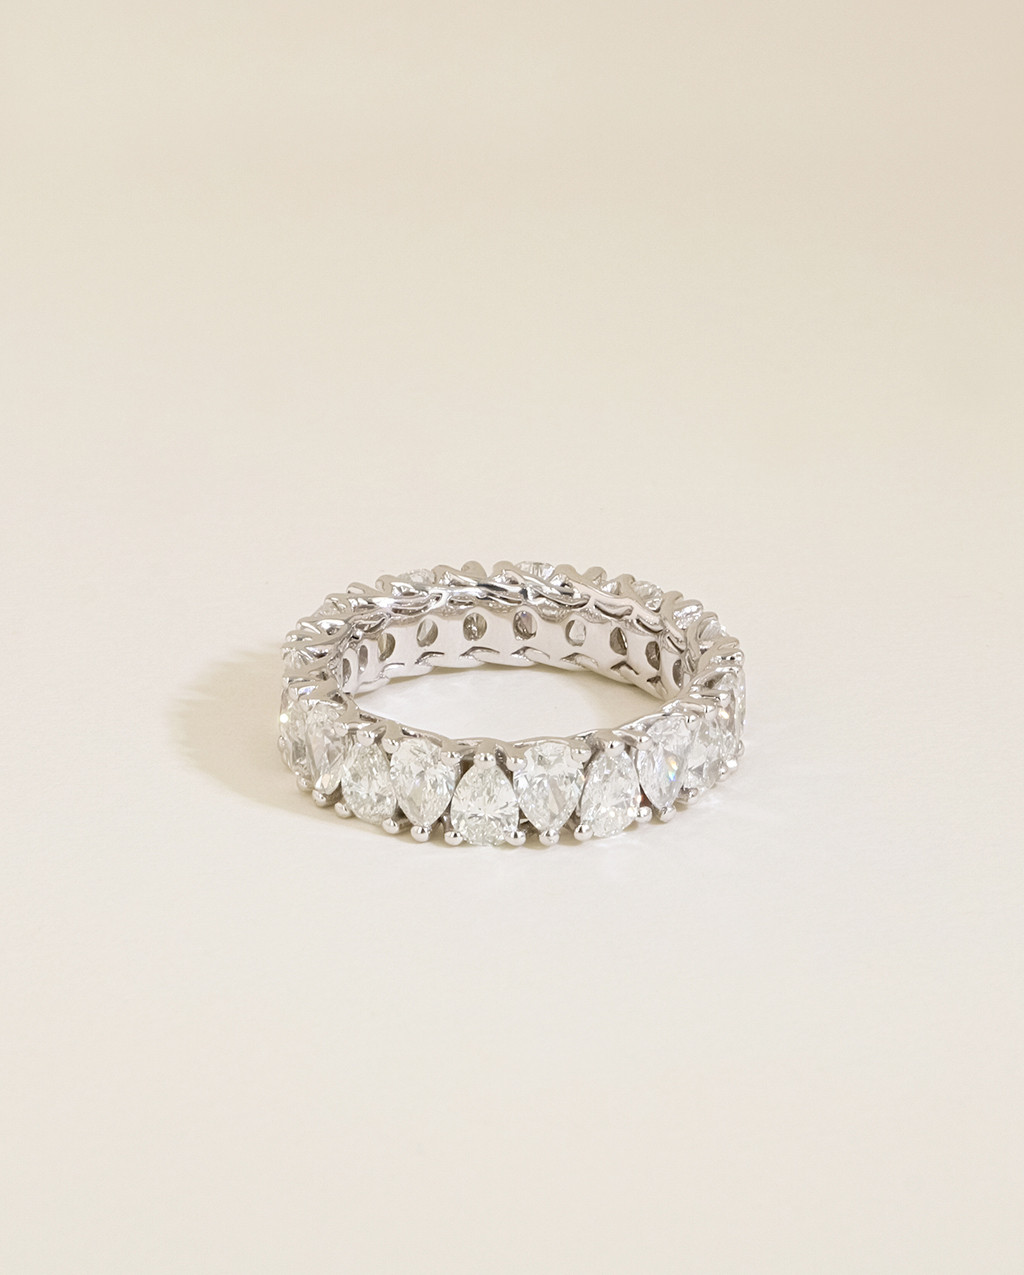 The Pear Diamond Eternity Ring top view